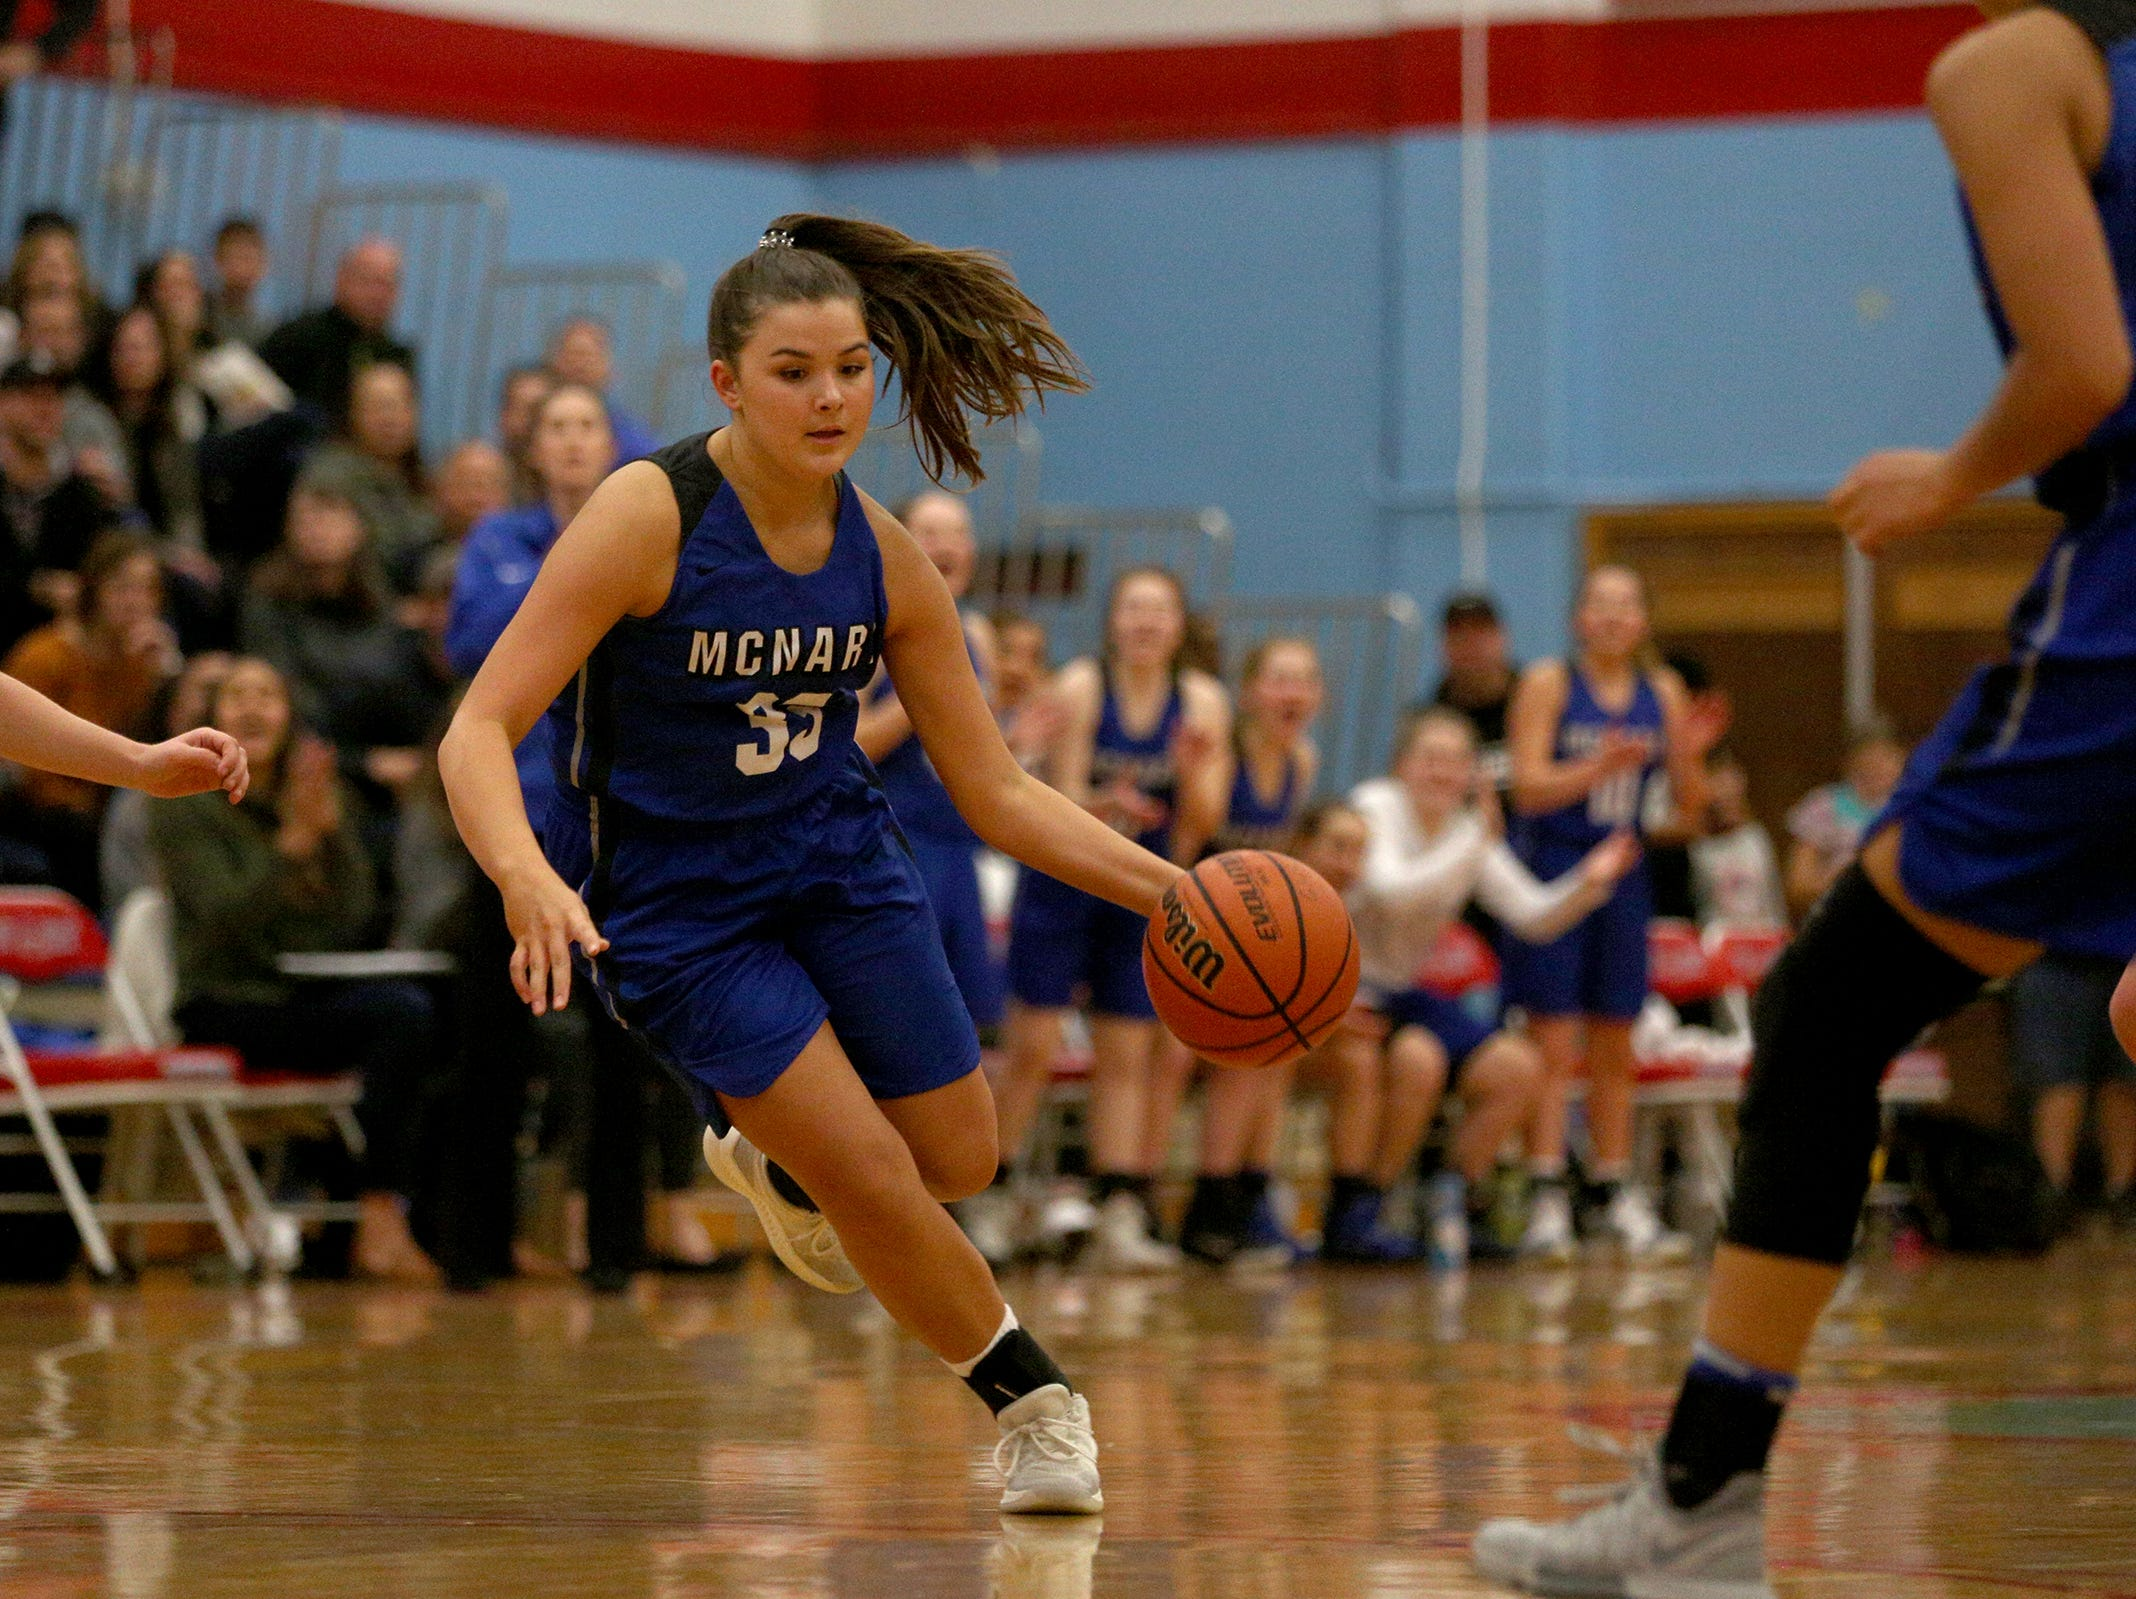 McNary's Mackenzie Proctor makes her way across the court during the South Salem High School girls basketball game against McNary High School in Salem on Thursday, Jan. 31, 2019.